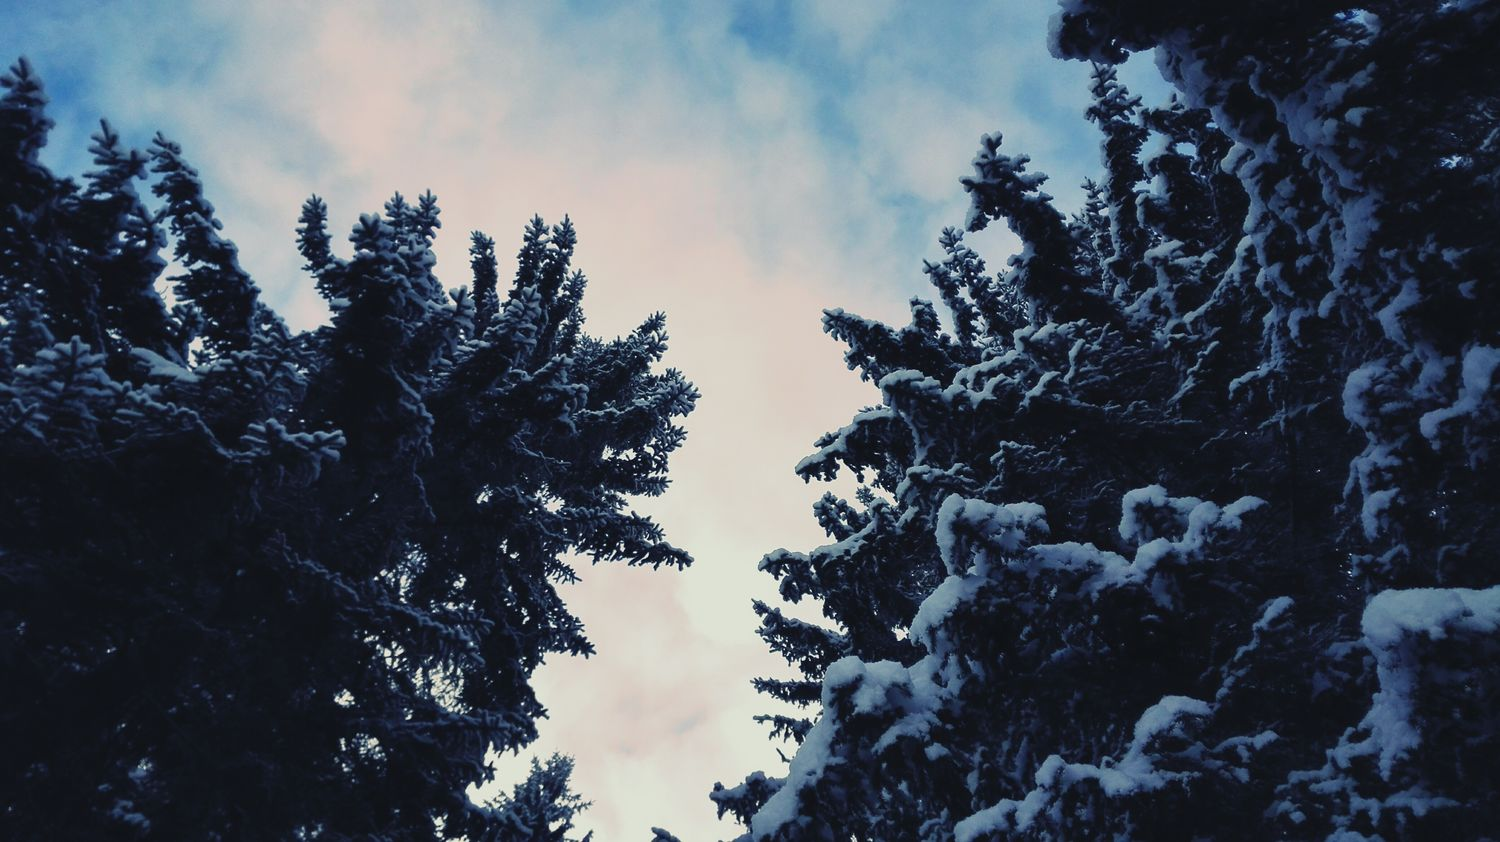 A break in the clouds Trees Sky And Clouds Sky Clouds Snow Winter Winter Trees Wintertime Nature Photography Photo Photography Sky And Trees